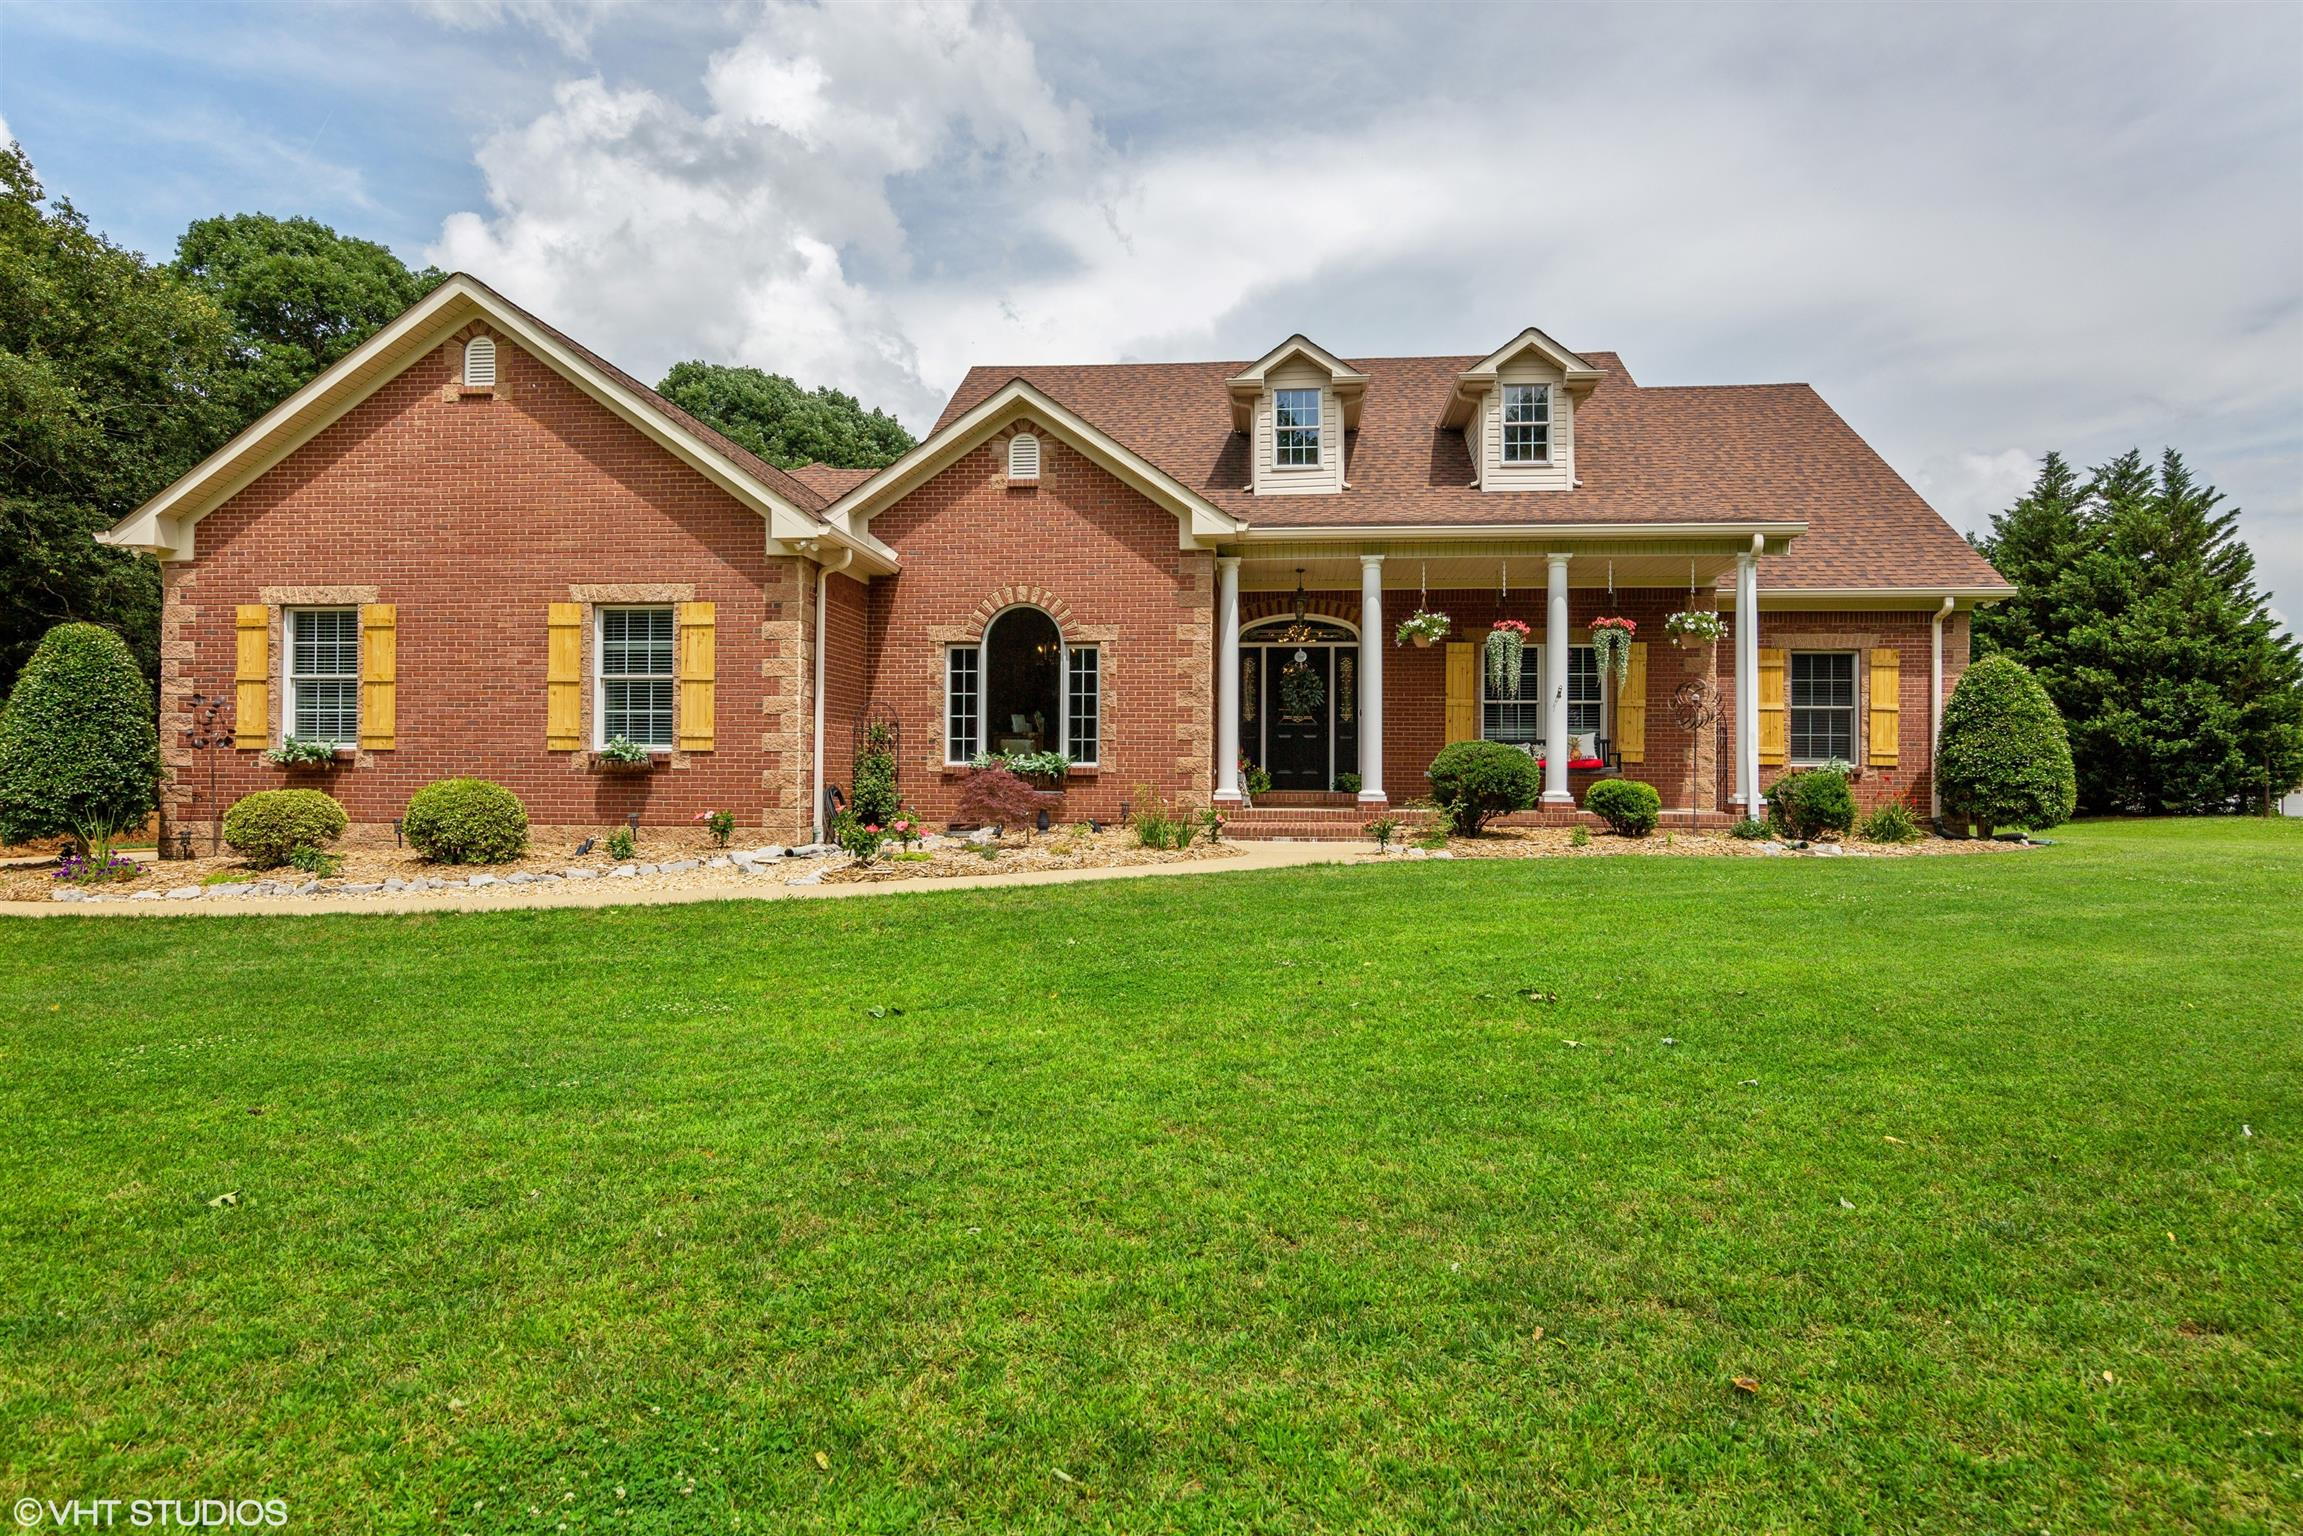 3745 Pondywood Rd, Adams, TN 37010 - Adams, TN real estate listing